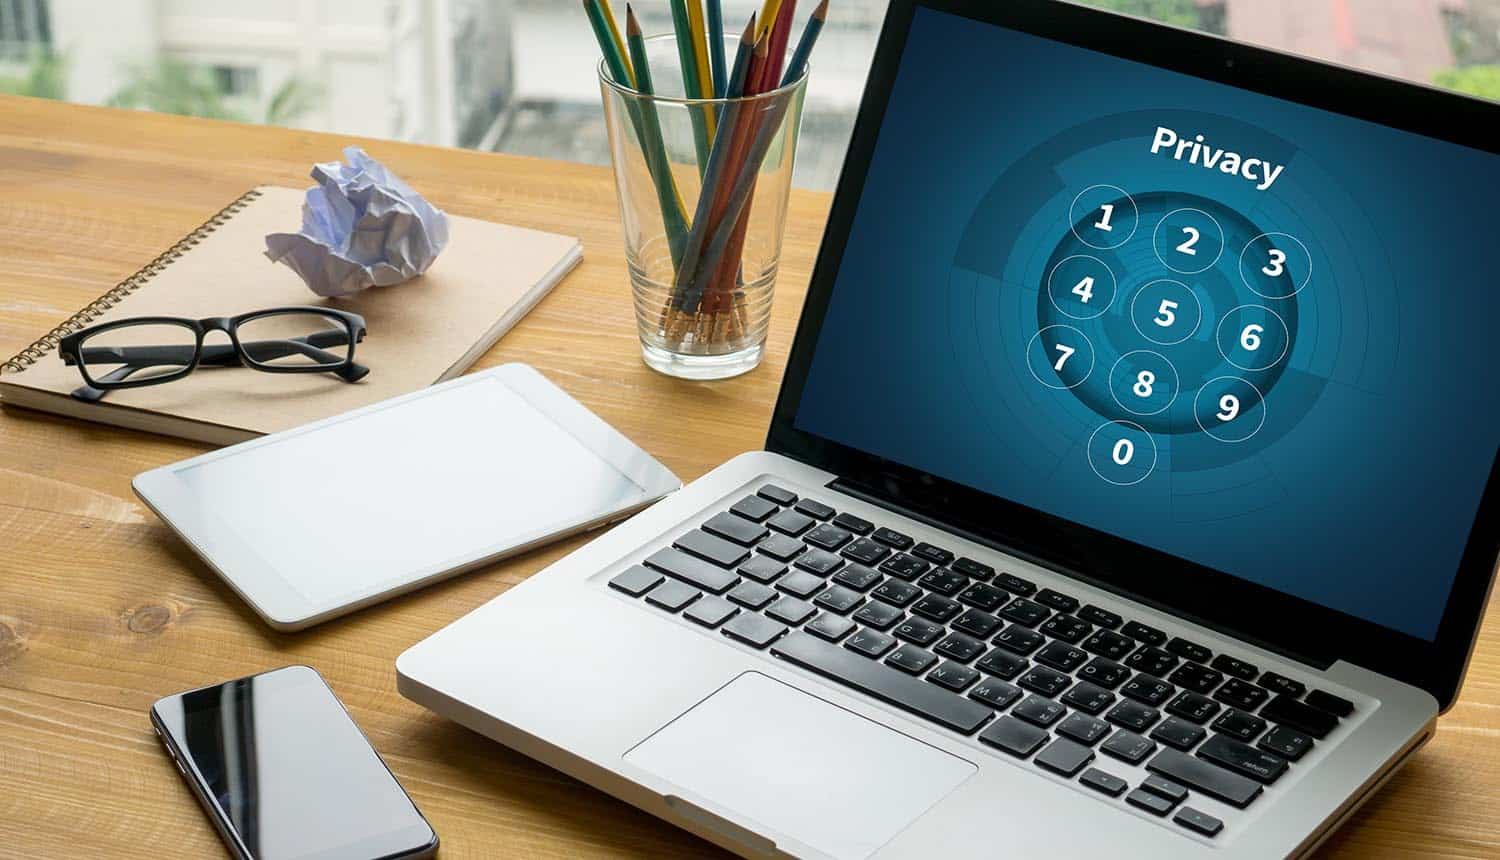 Privacy passcode on laptop screen